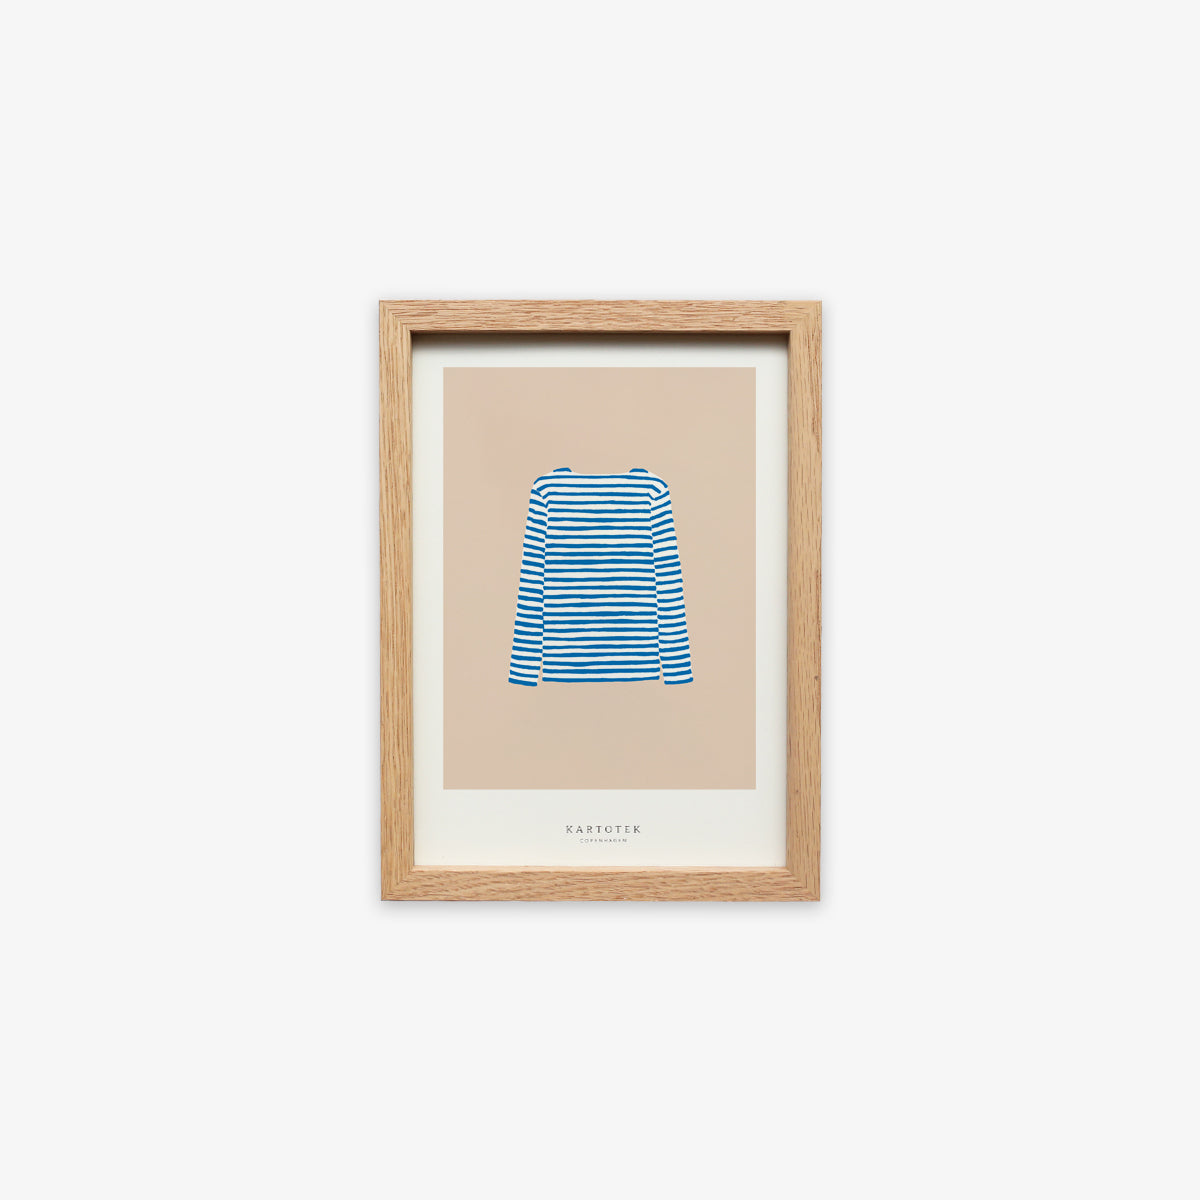 OAK WOOD FRAME + CARD A5 // SWEATER BLUE